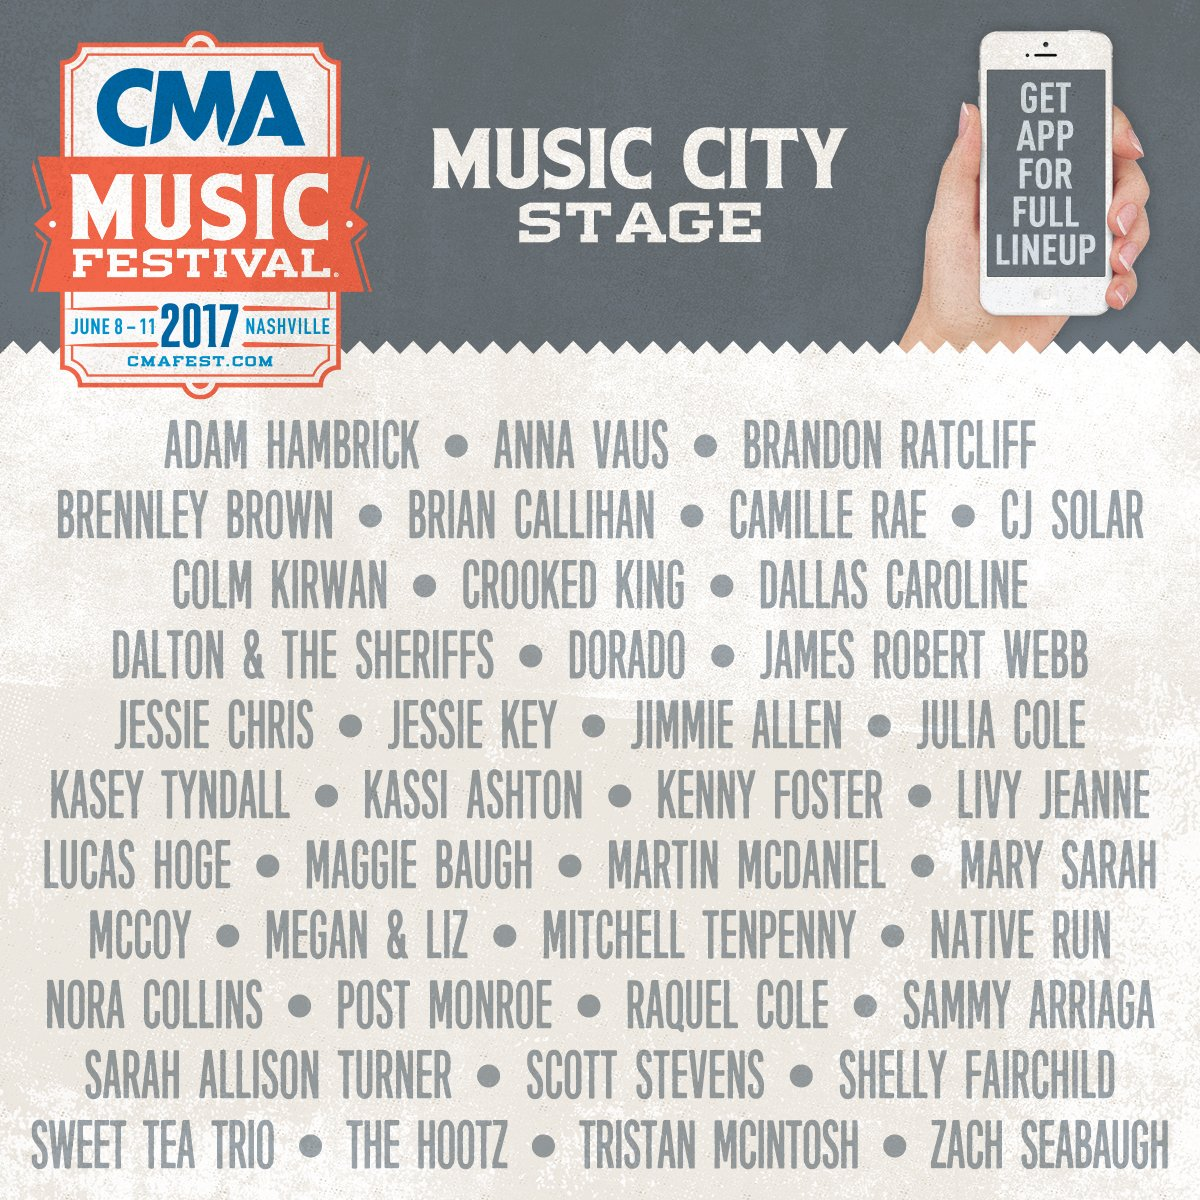 Can't believe I get to play #CMAfest this year! Come find me at the Music City Stage, June 10th at 12:10pm  #Nashville <br>http://pic.twitter.com/yToORDOtip